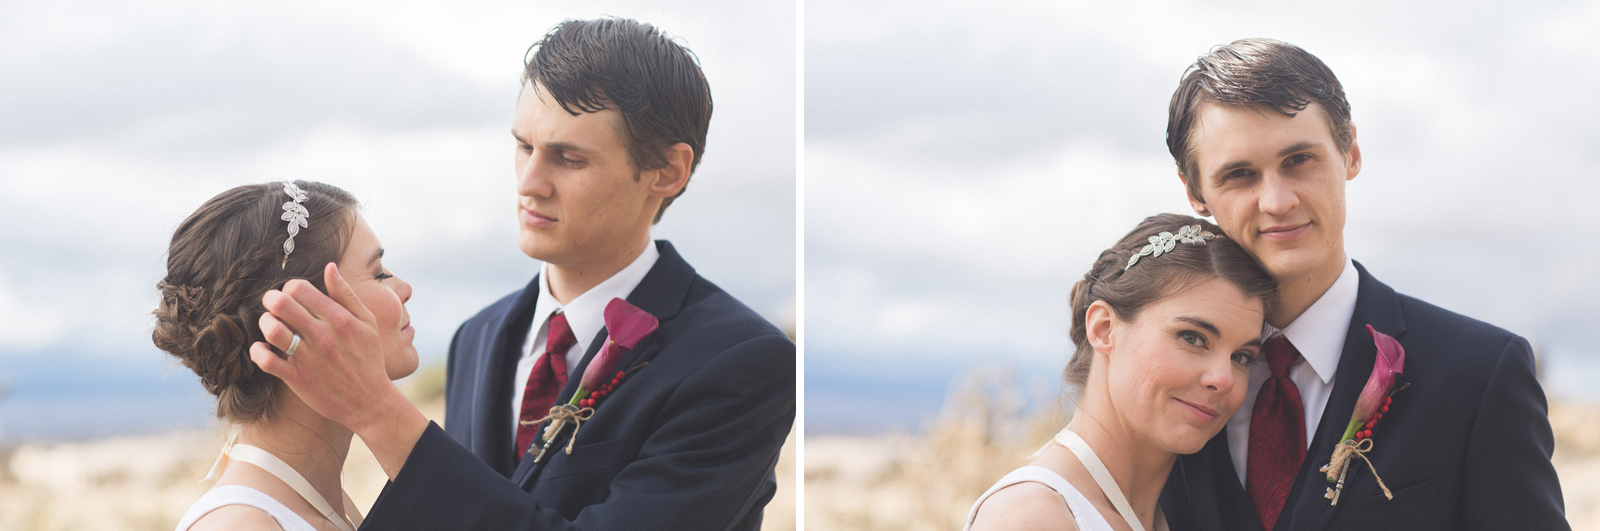 140-bride-and-groom-photos-capture-lifestyle-photography-in-sandia-mountains